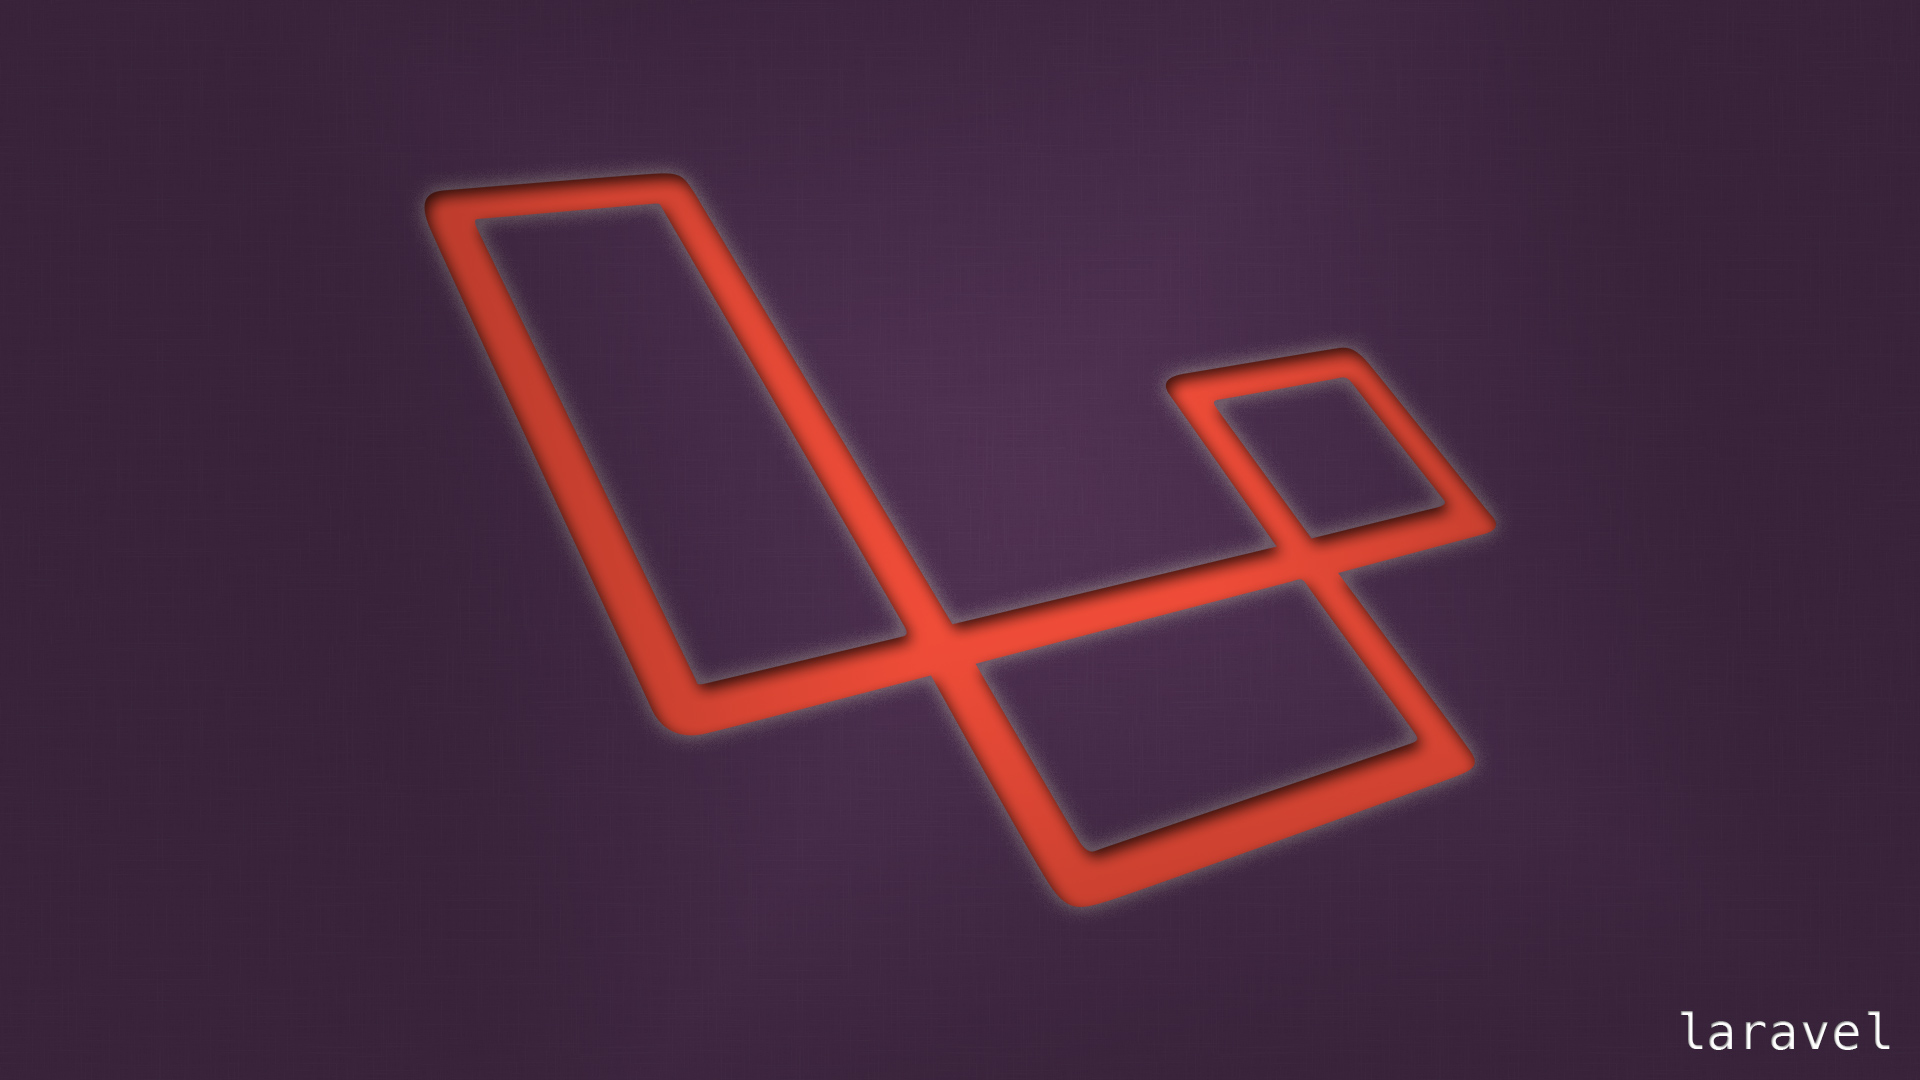 laravel_purple_1920x1080